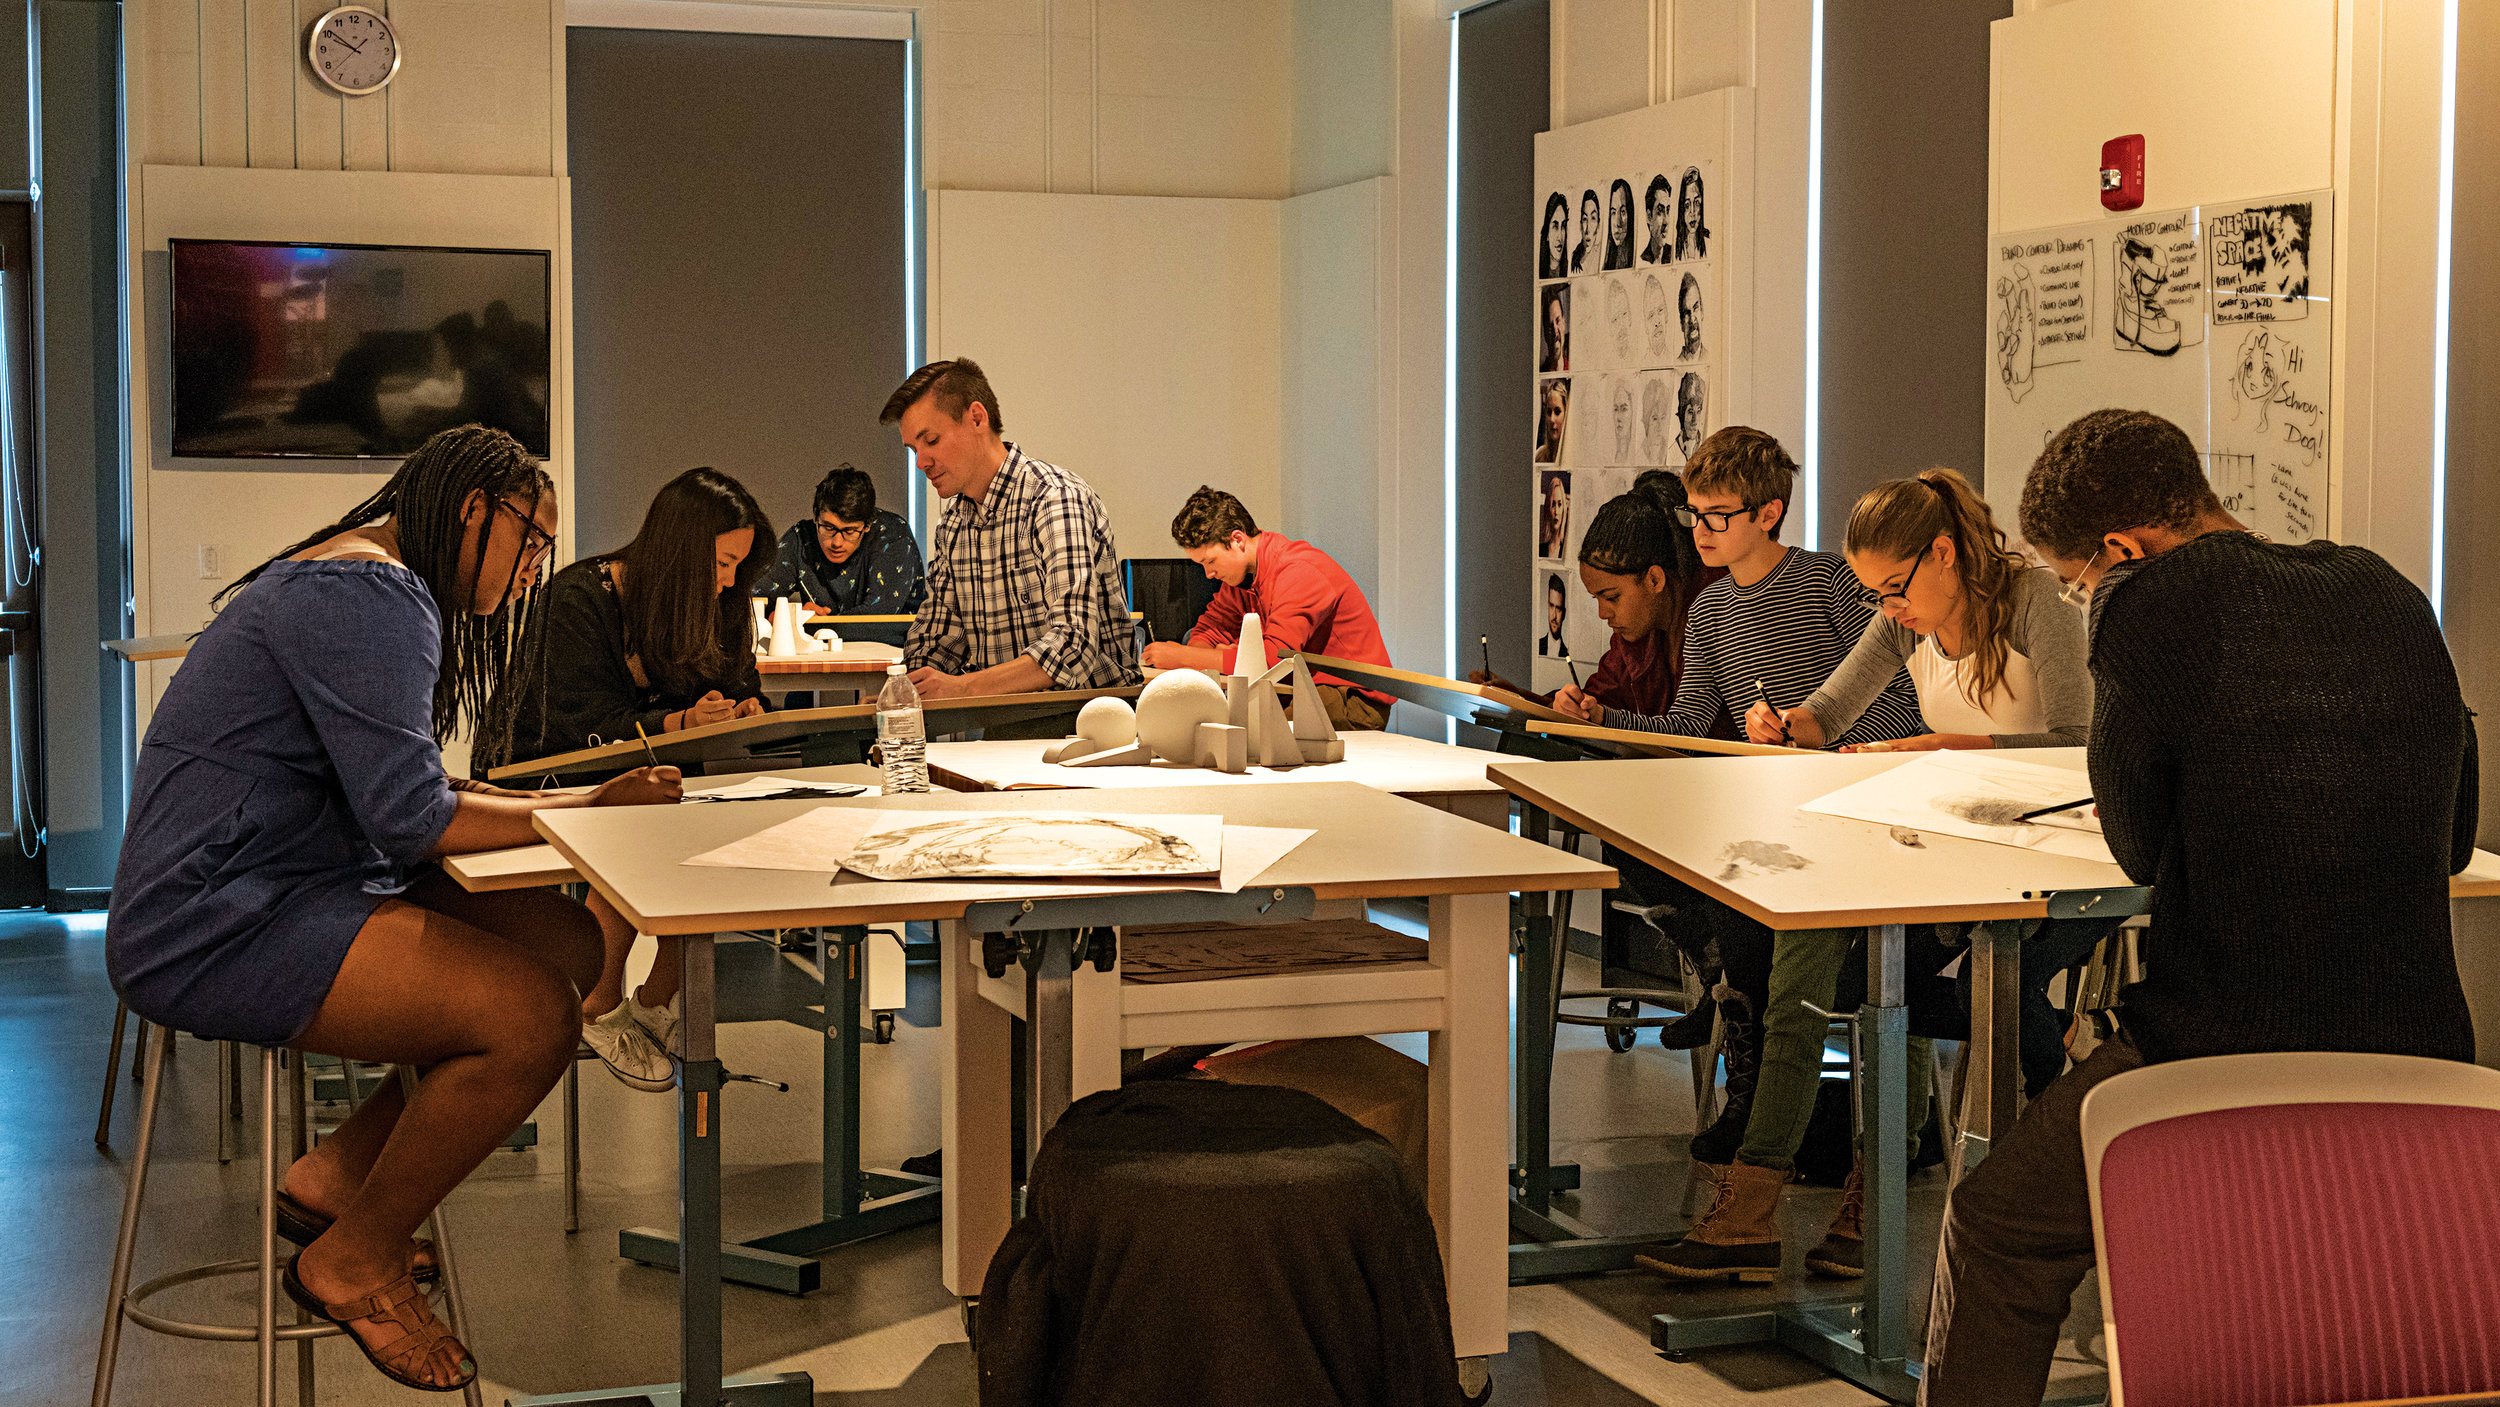 Brian Schroyer's drawing class hard at work.